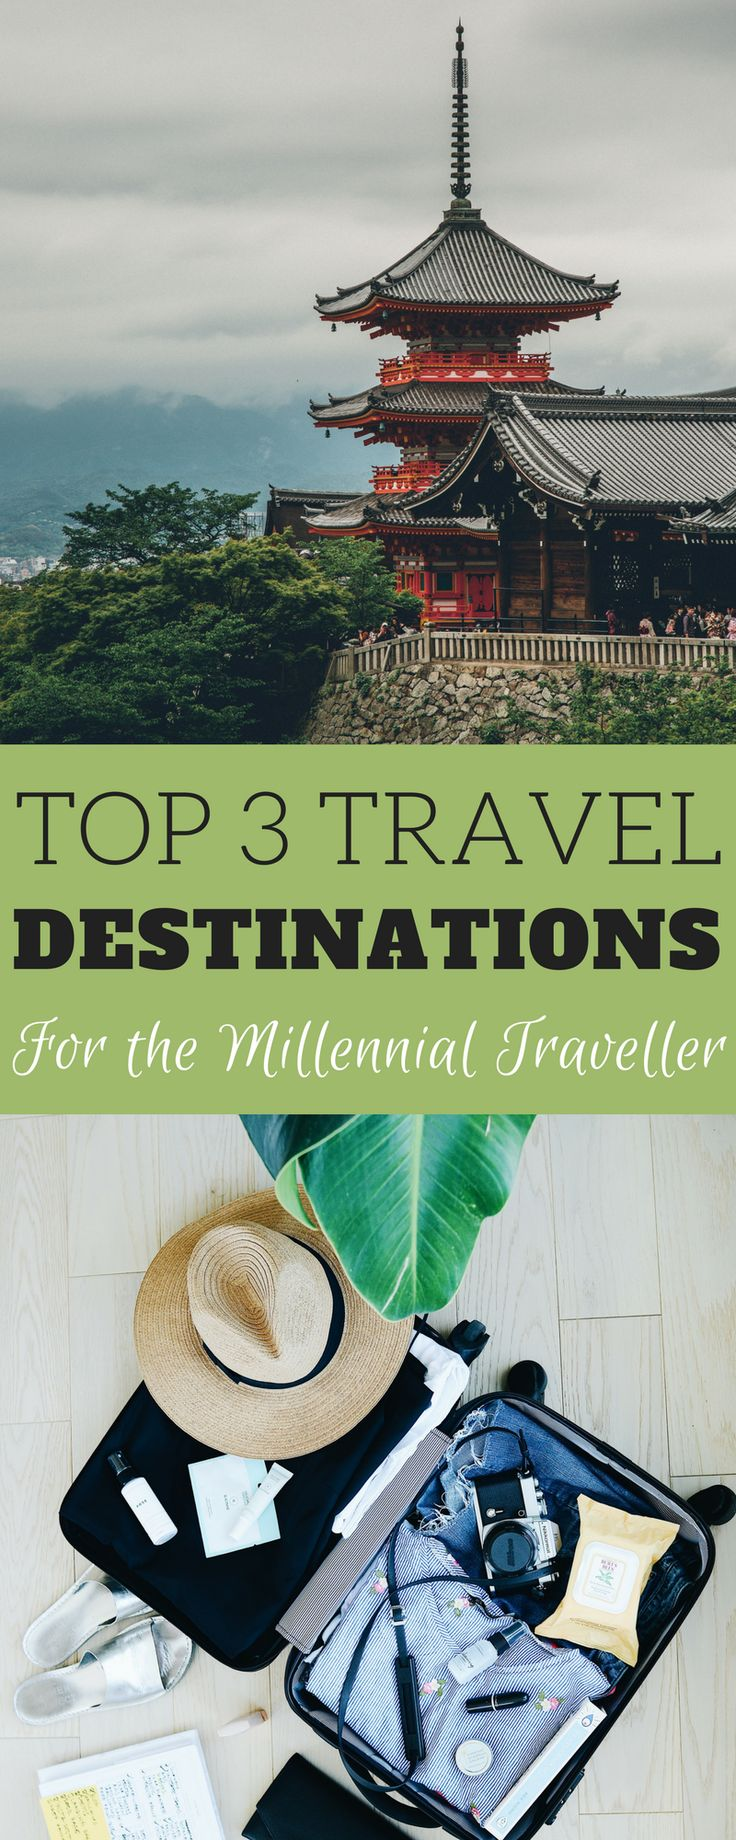 Top 3 travel destinations for any millennial traveler -